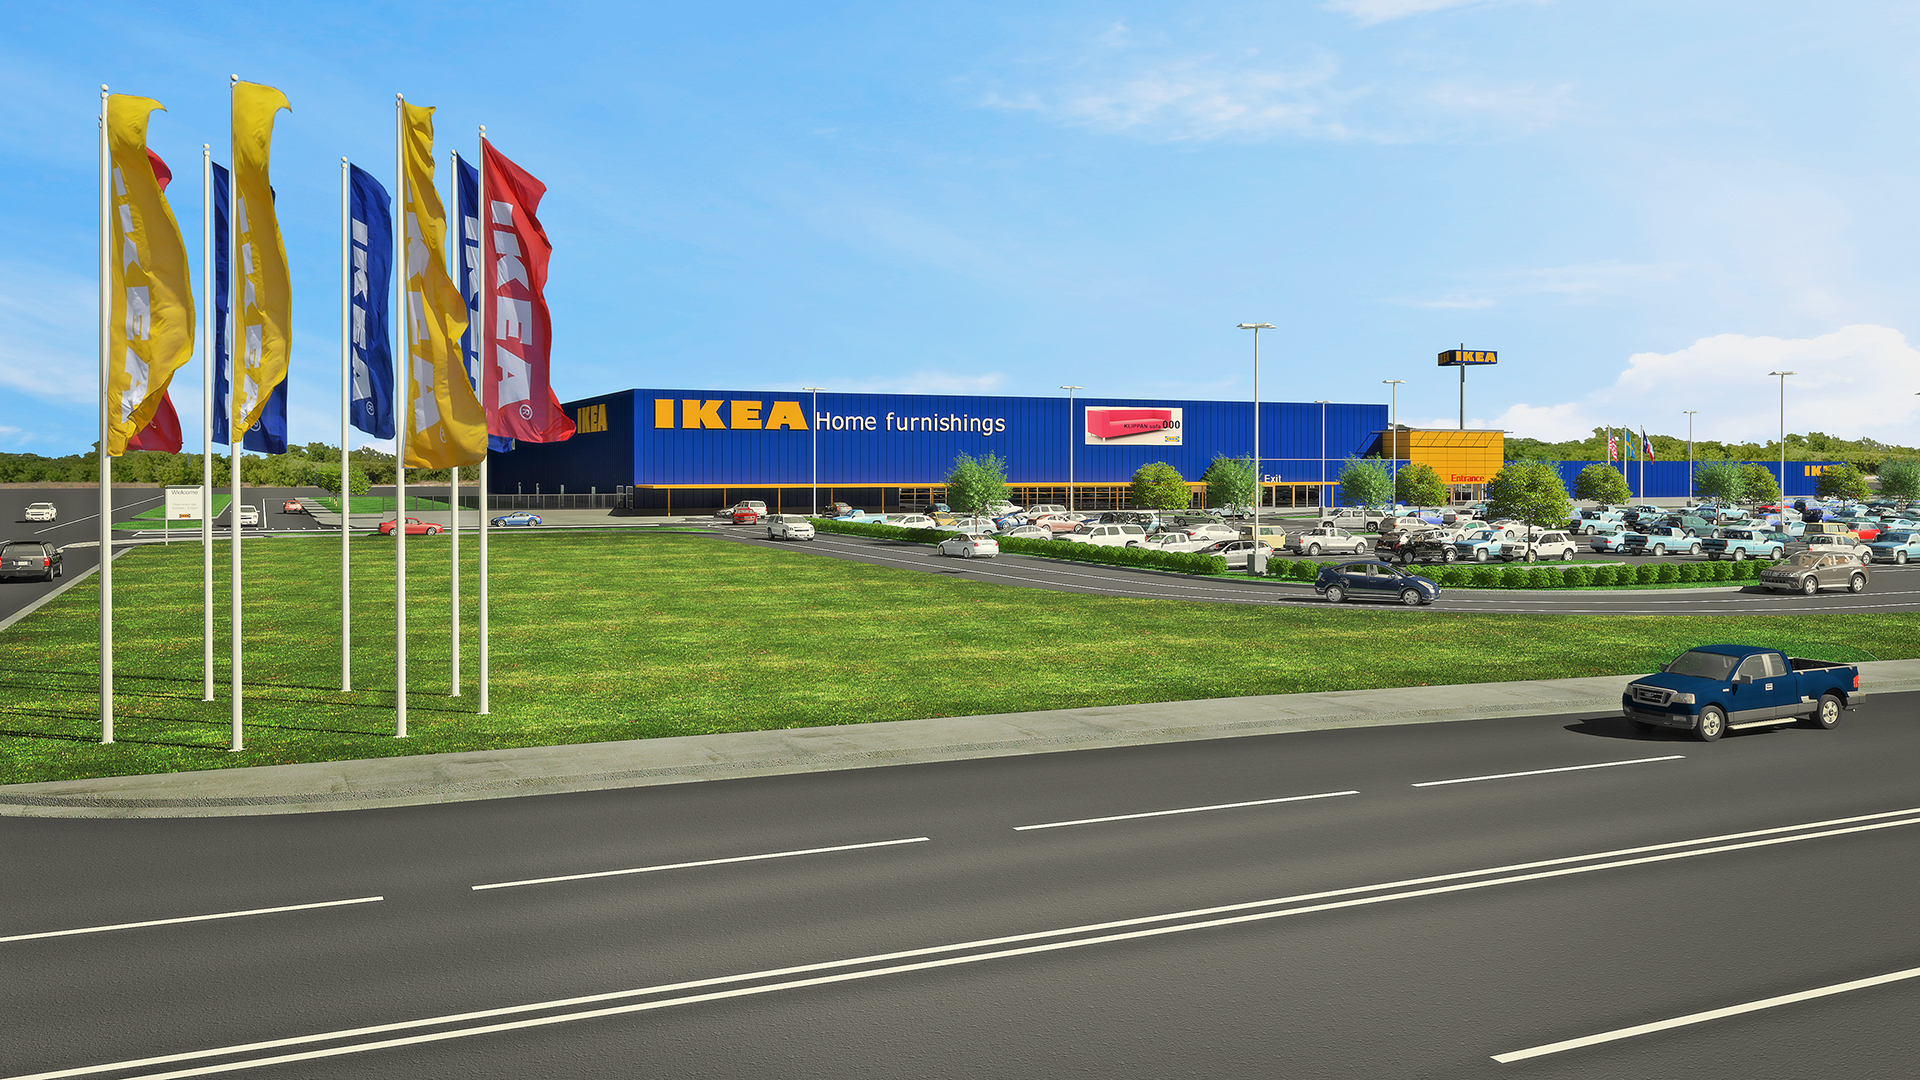 ikea proposes plans for fort worth store to open summer 2019 as third dallas fort worth area. Black Bedroom Furniture Sets. Home Design Ideas